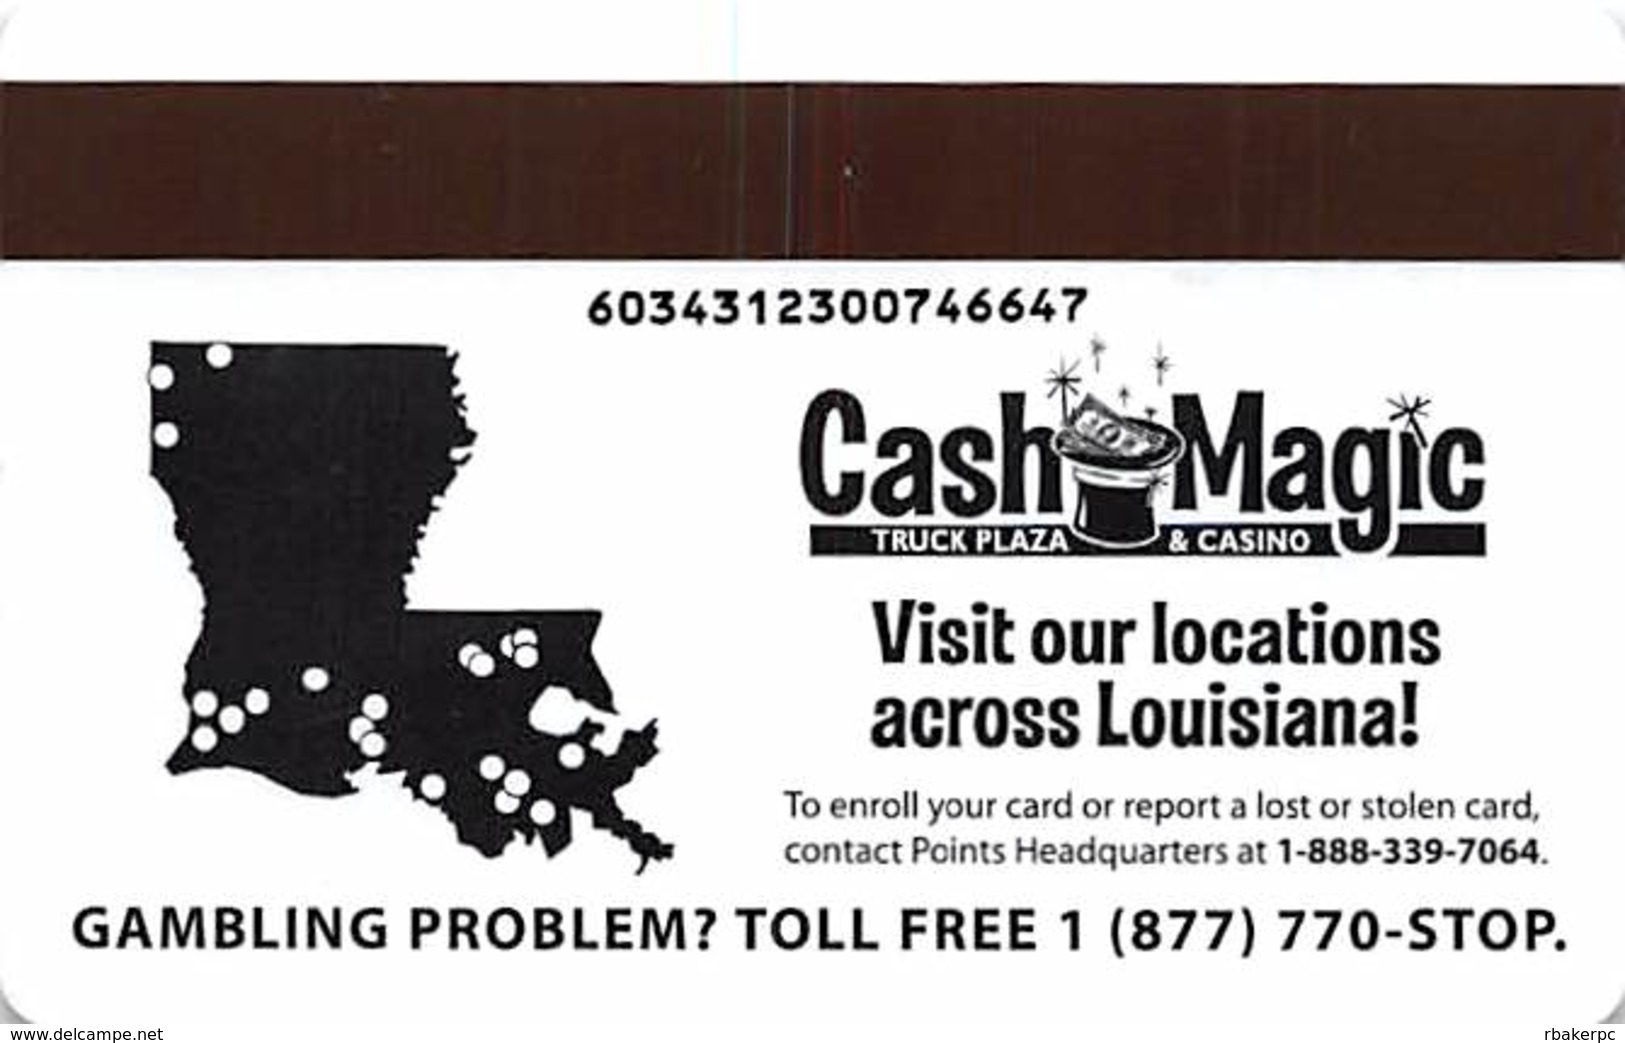 Cash Magic Truck Plazas & Casinos - Various Cities In Louisana - Slot Card - Different Variations Of Text On Back - Casino Cards